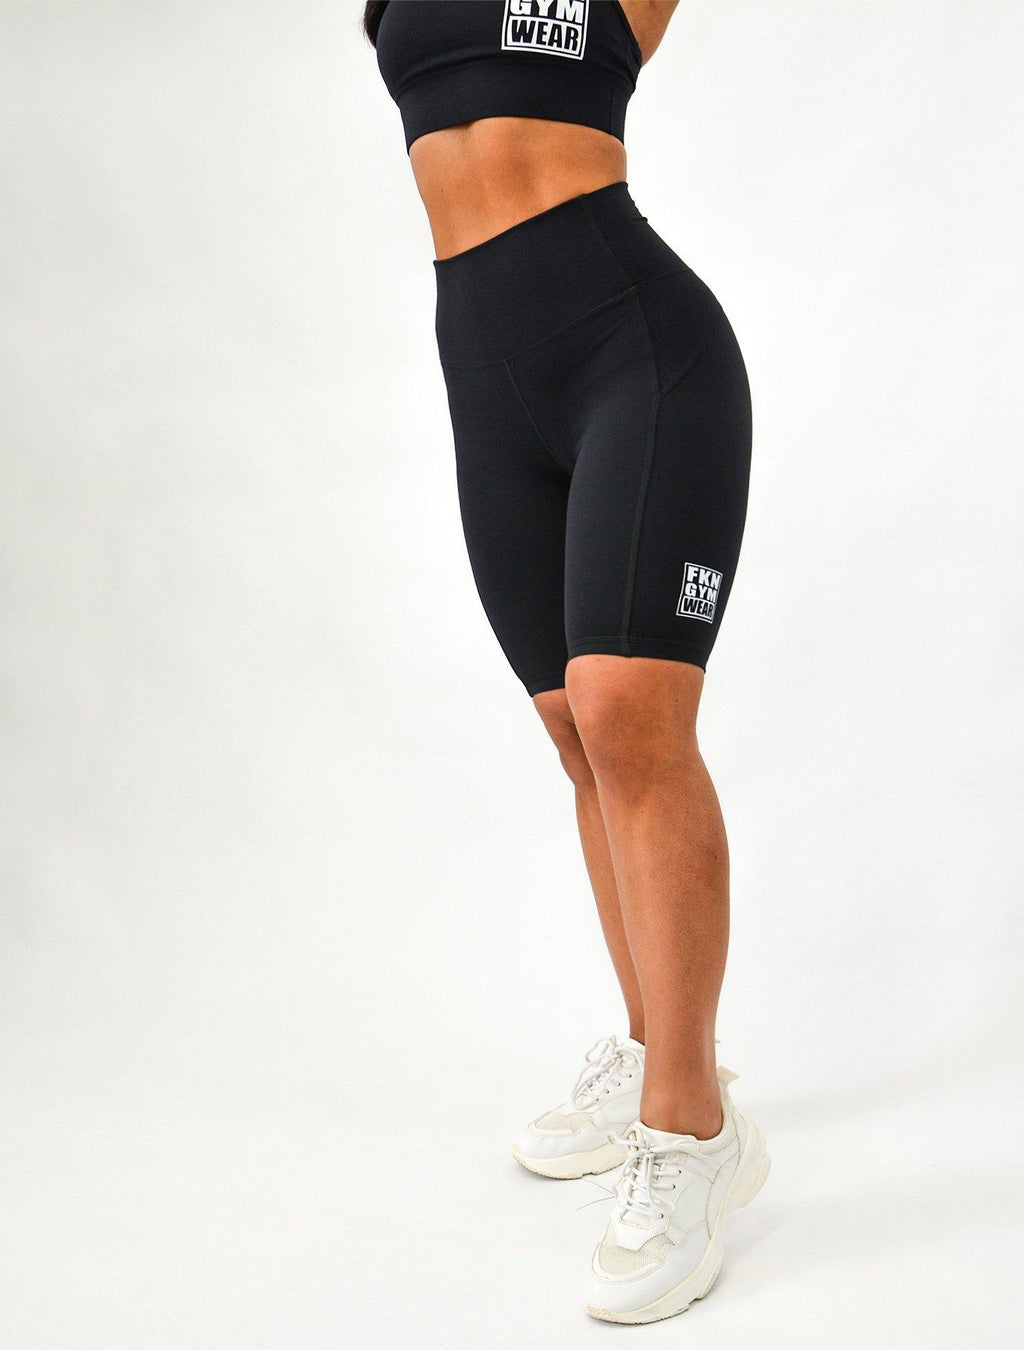 Vixen | Bike Shorts - FKN Gym Wear